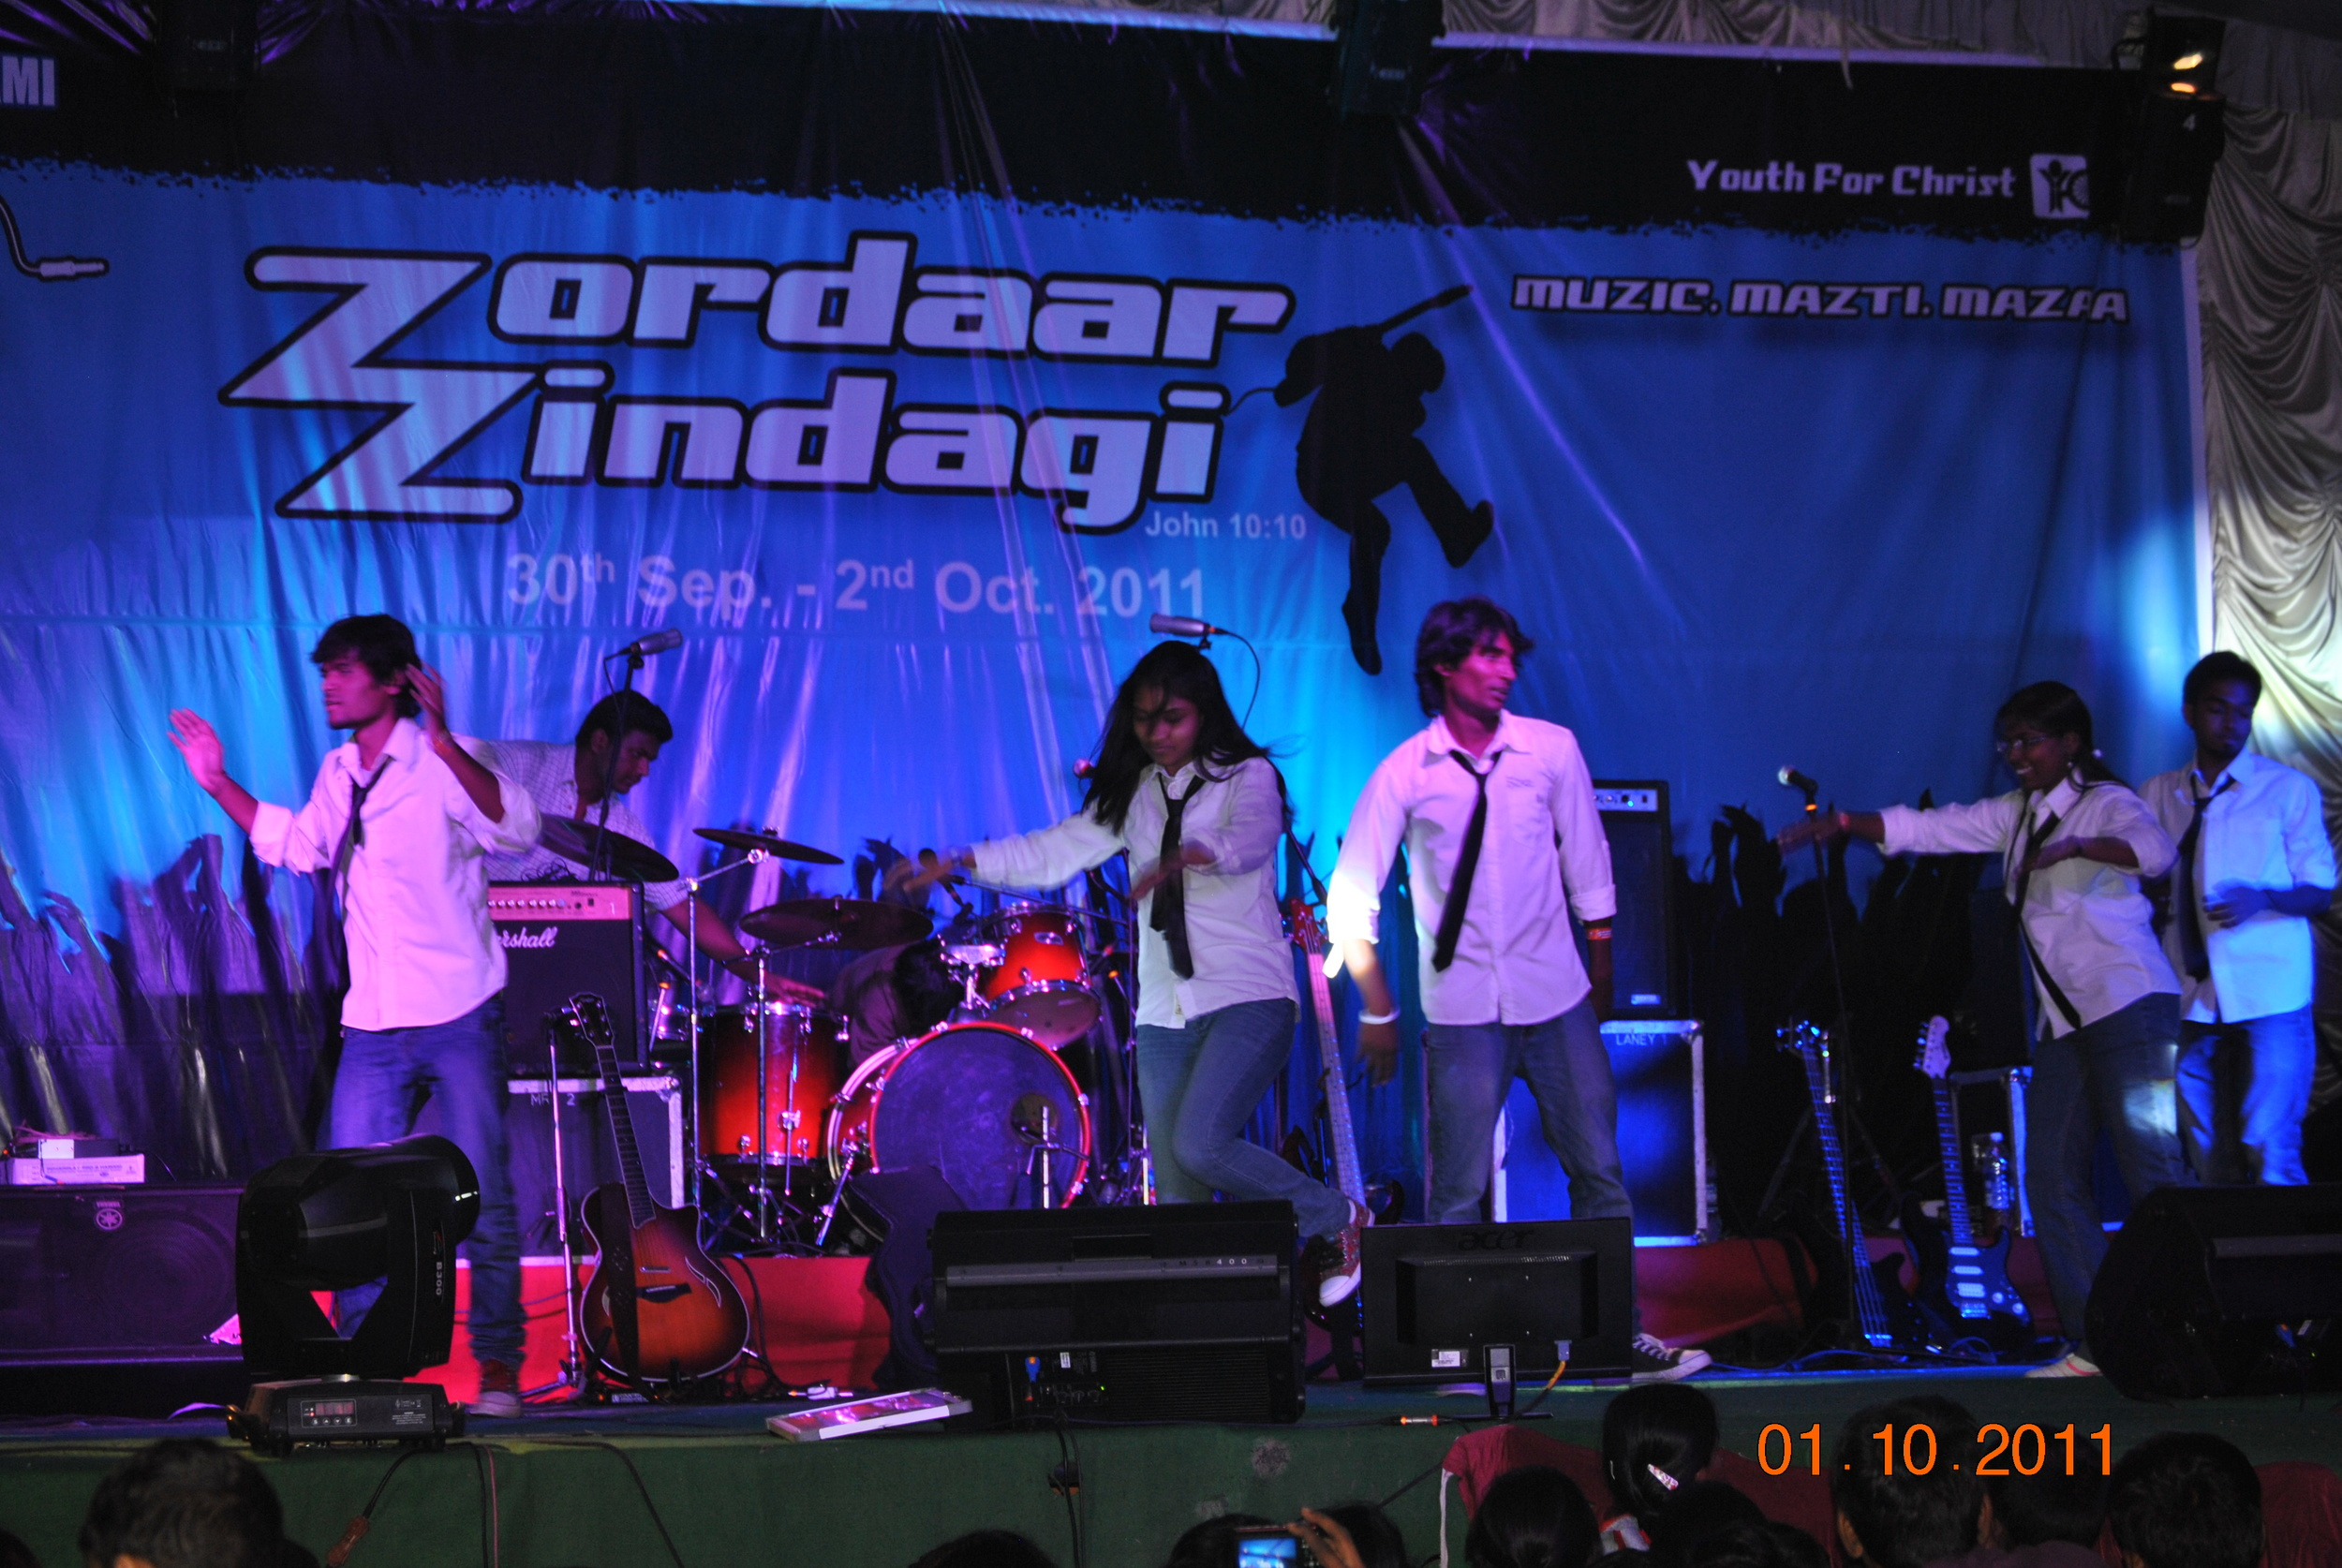 ZORSDAAR ZINDAGI 2nd DAY 033.JPG